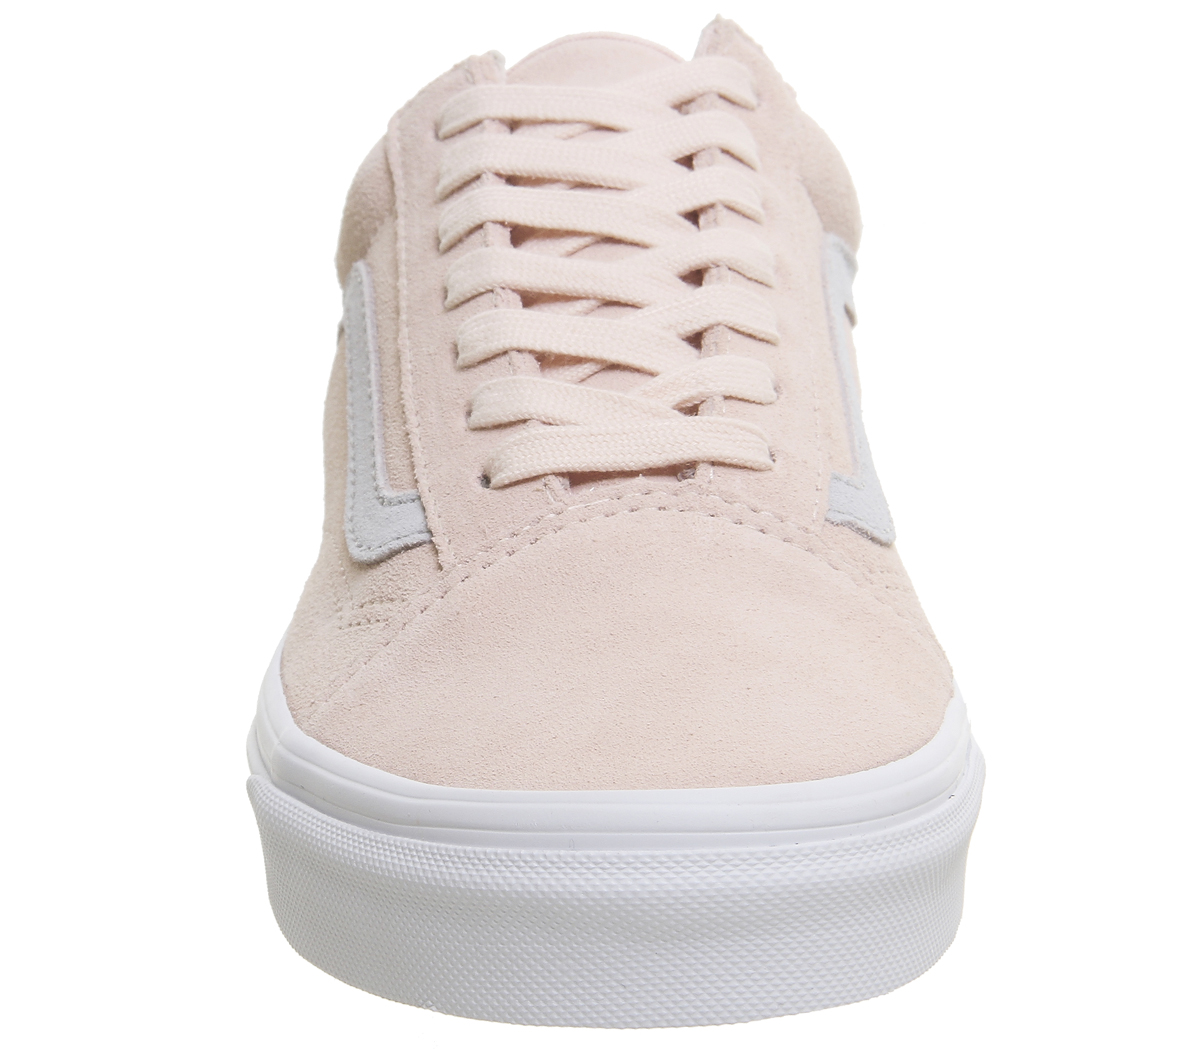 576de7b9e77548 Mens Vans Old Skool Trainers PALE PINK GREY EXCLUSIVE Trainers Shoes ...